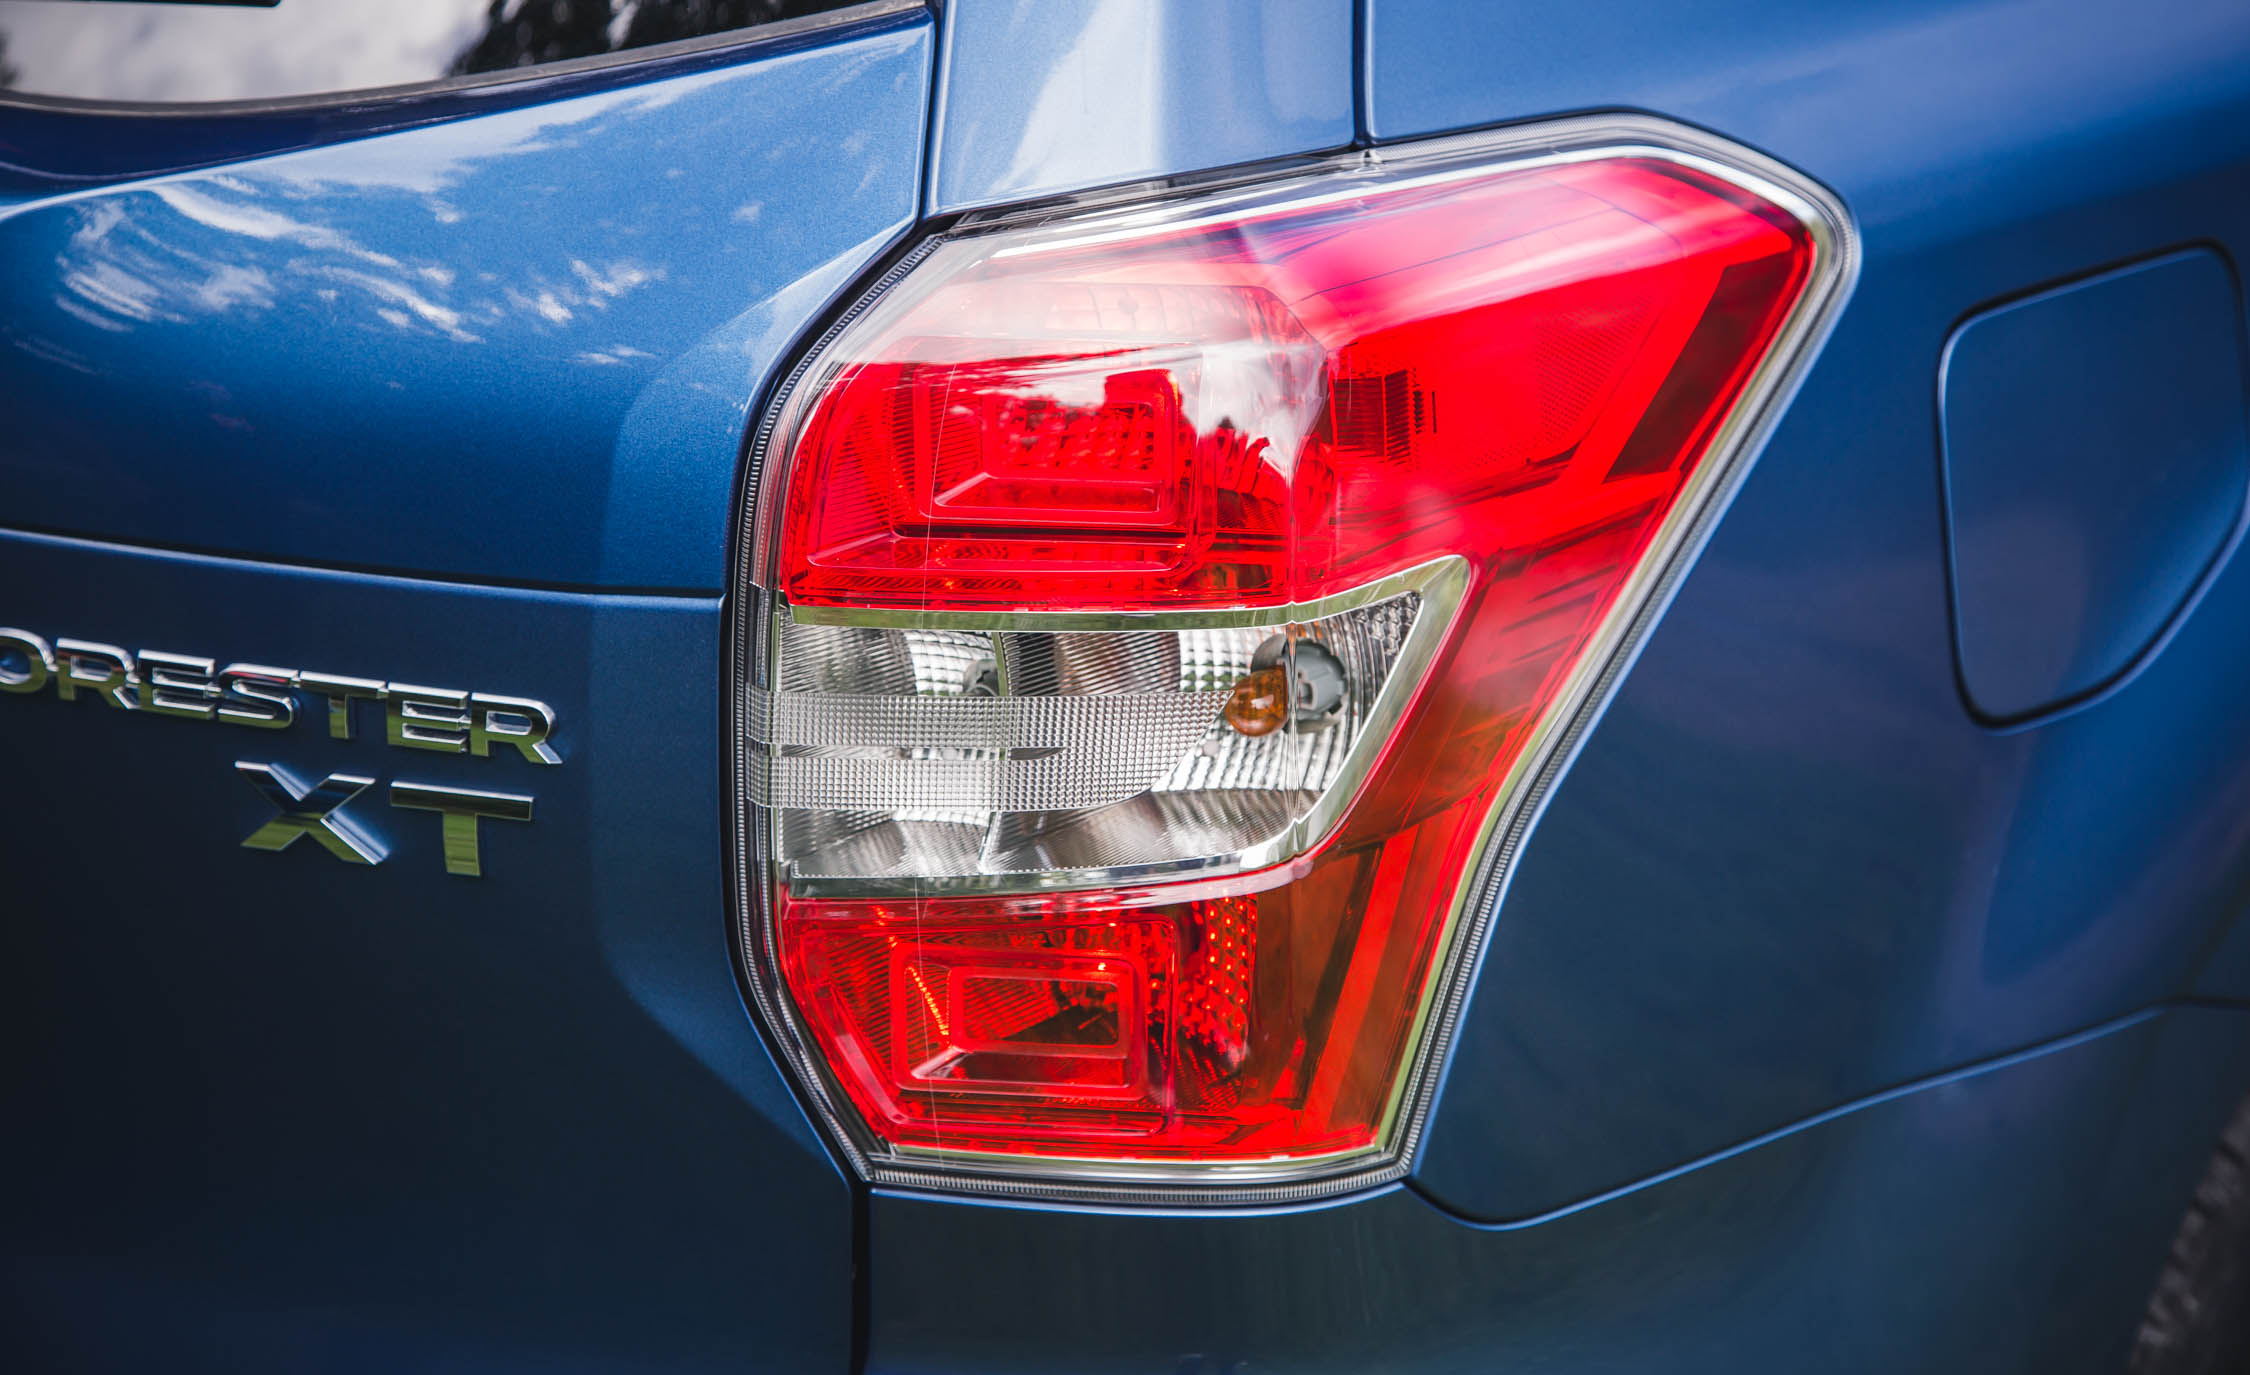 2016 Subaru Forester 2 0xt Touring Exterior Taillight Right (View 2 of 29)